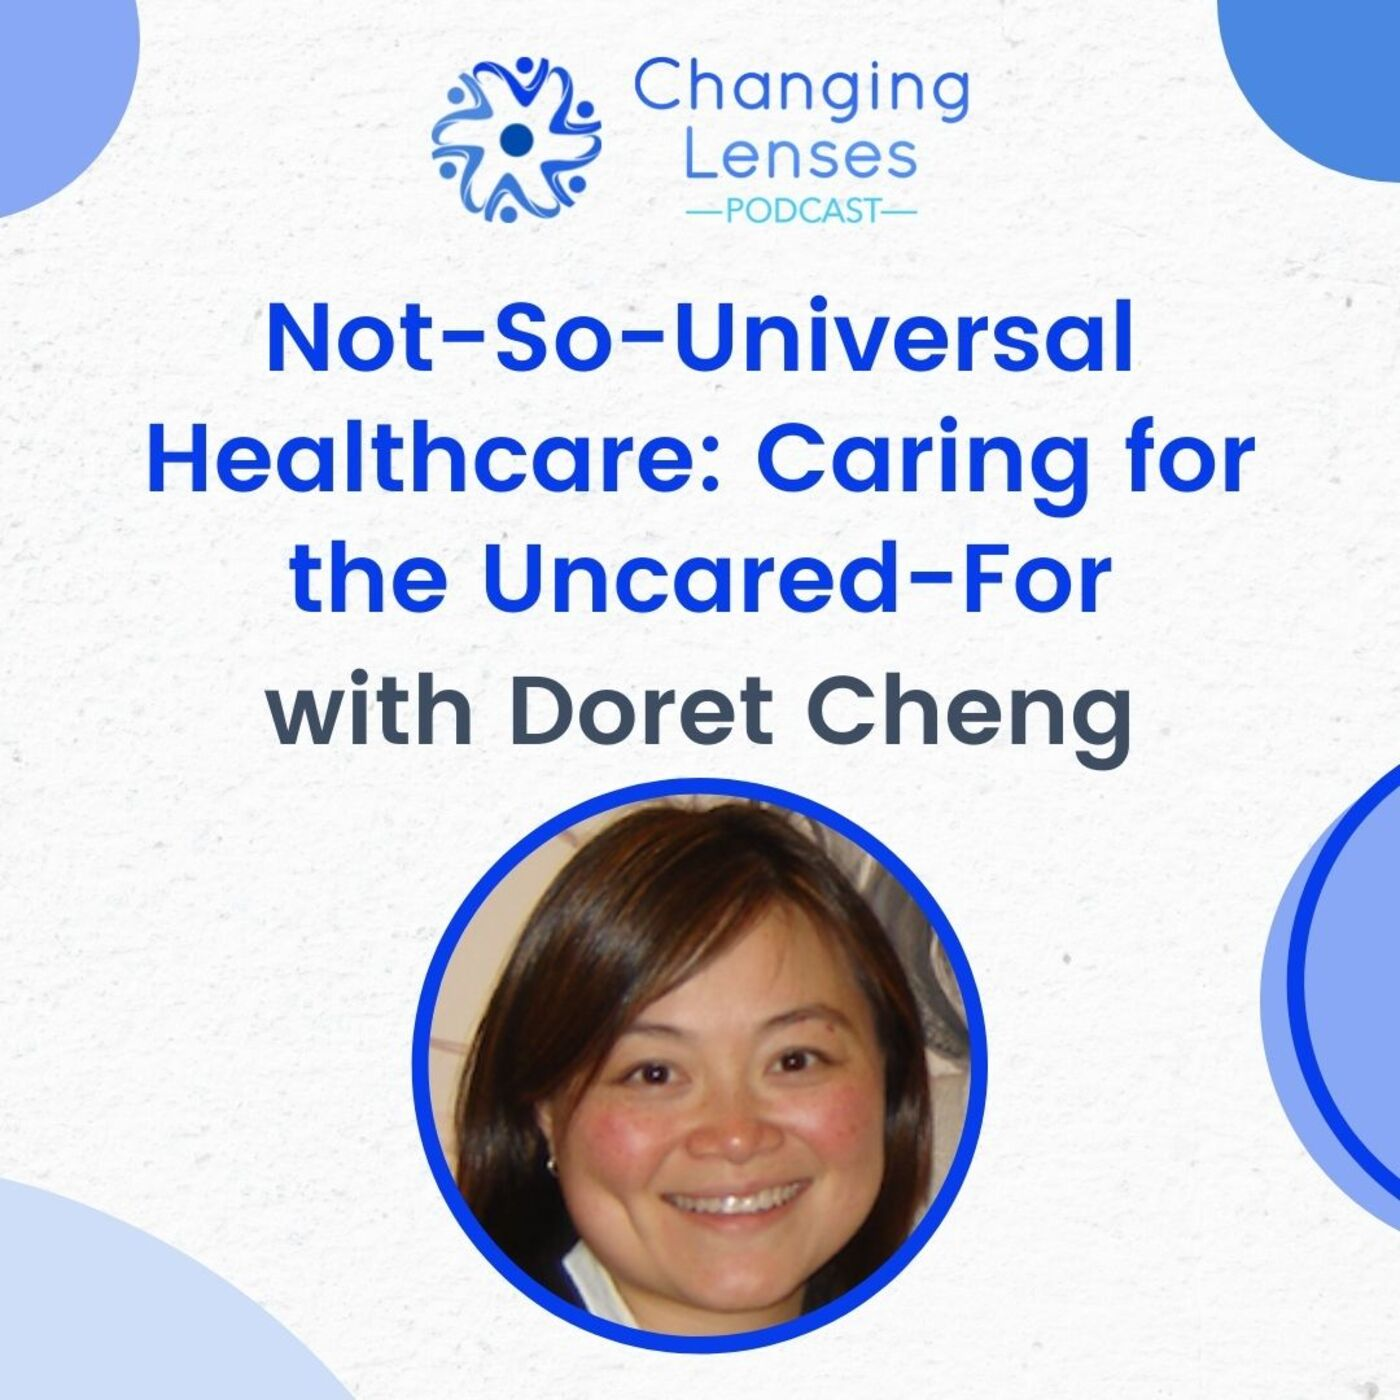 Ep05: Not-So-Universal Healthcare: Caring for the Uncared-For, with Doret Cheng